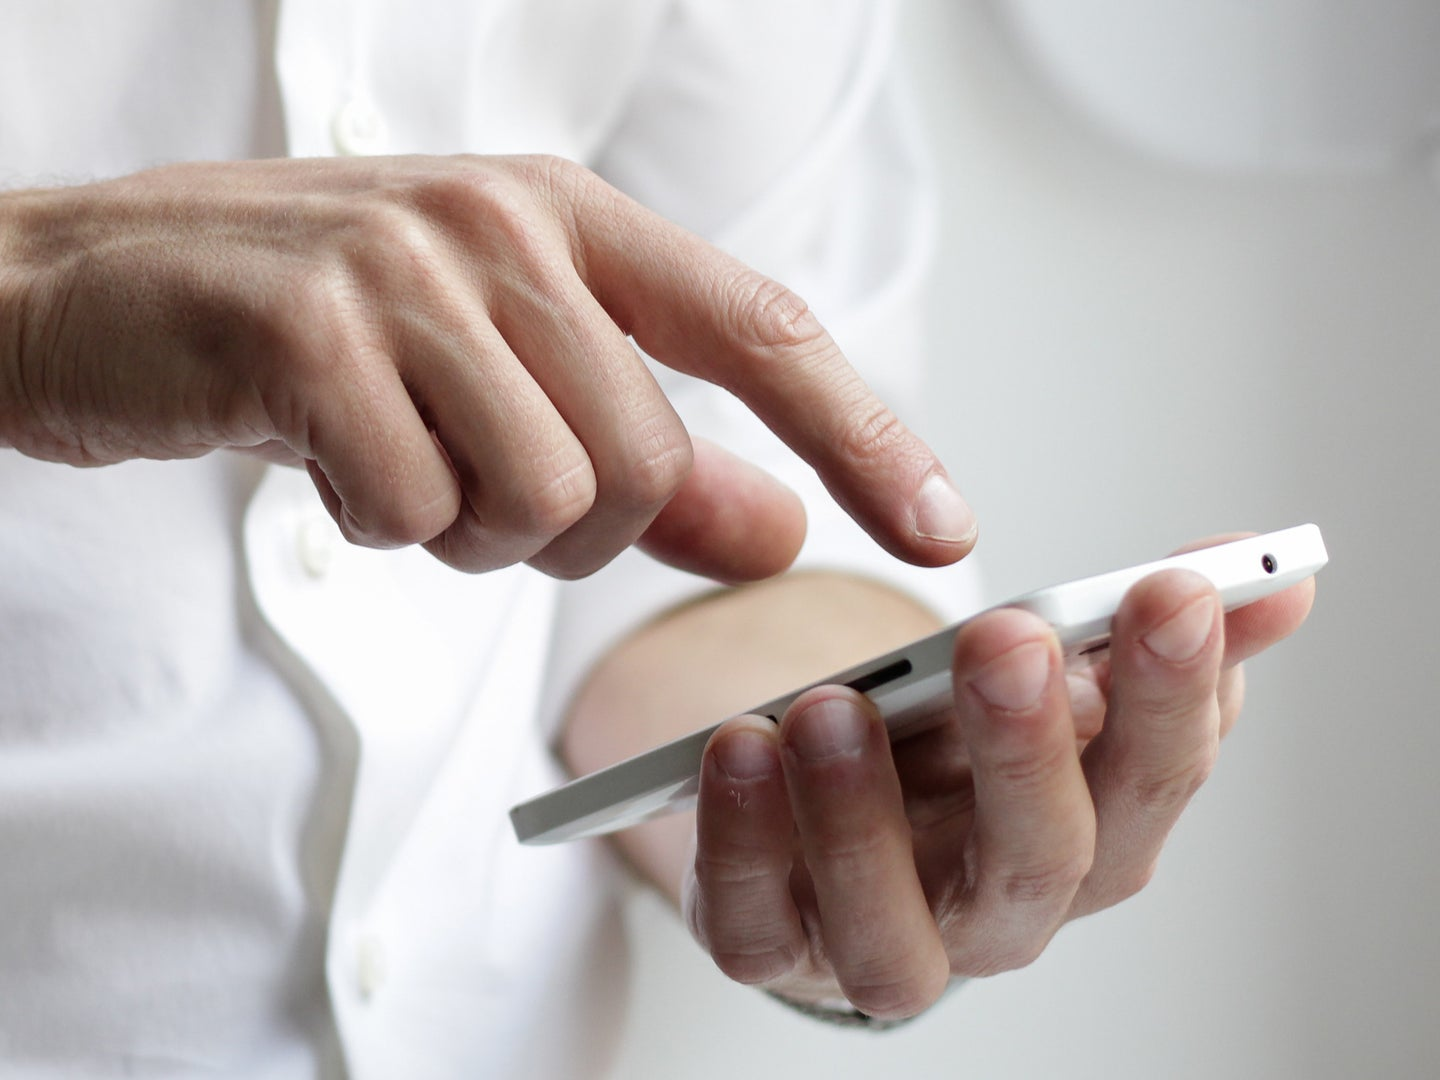 a person using a phone